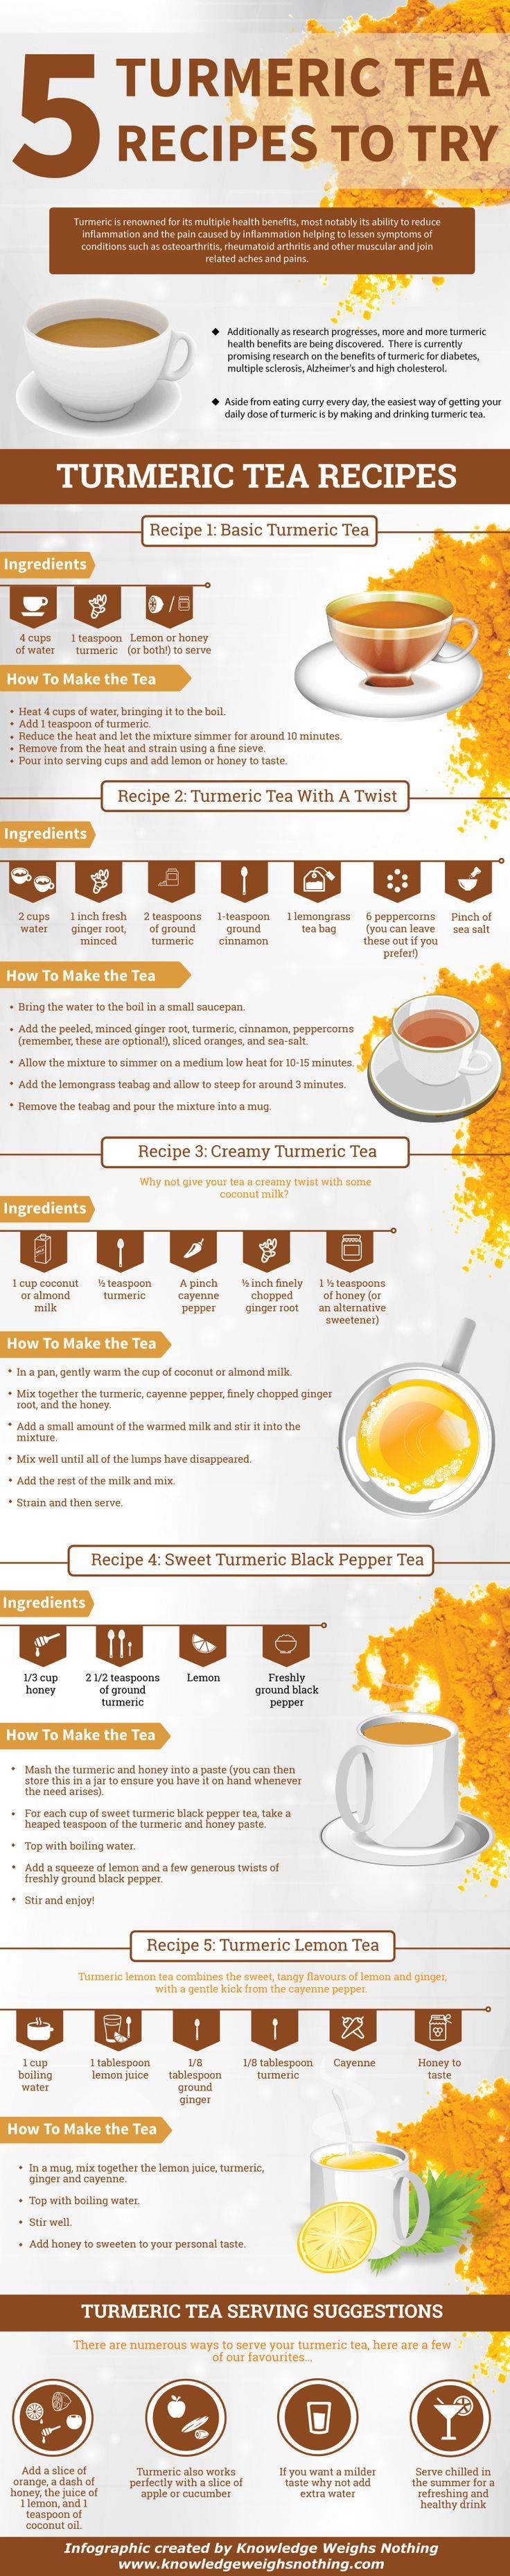 5 Turmeric Tea Recipes To Try